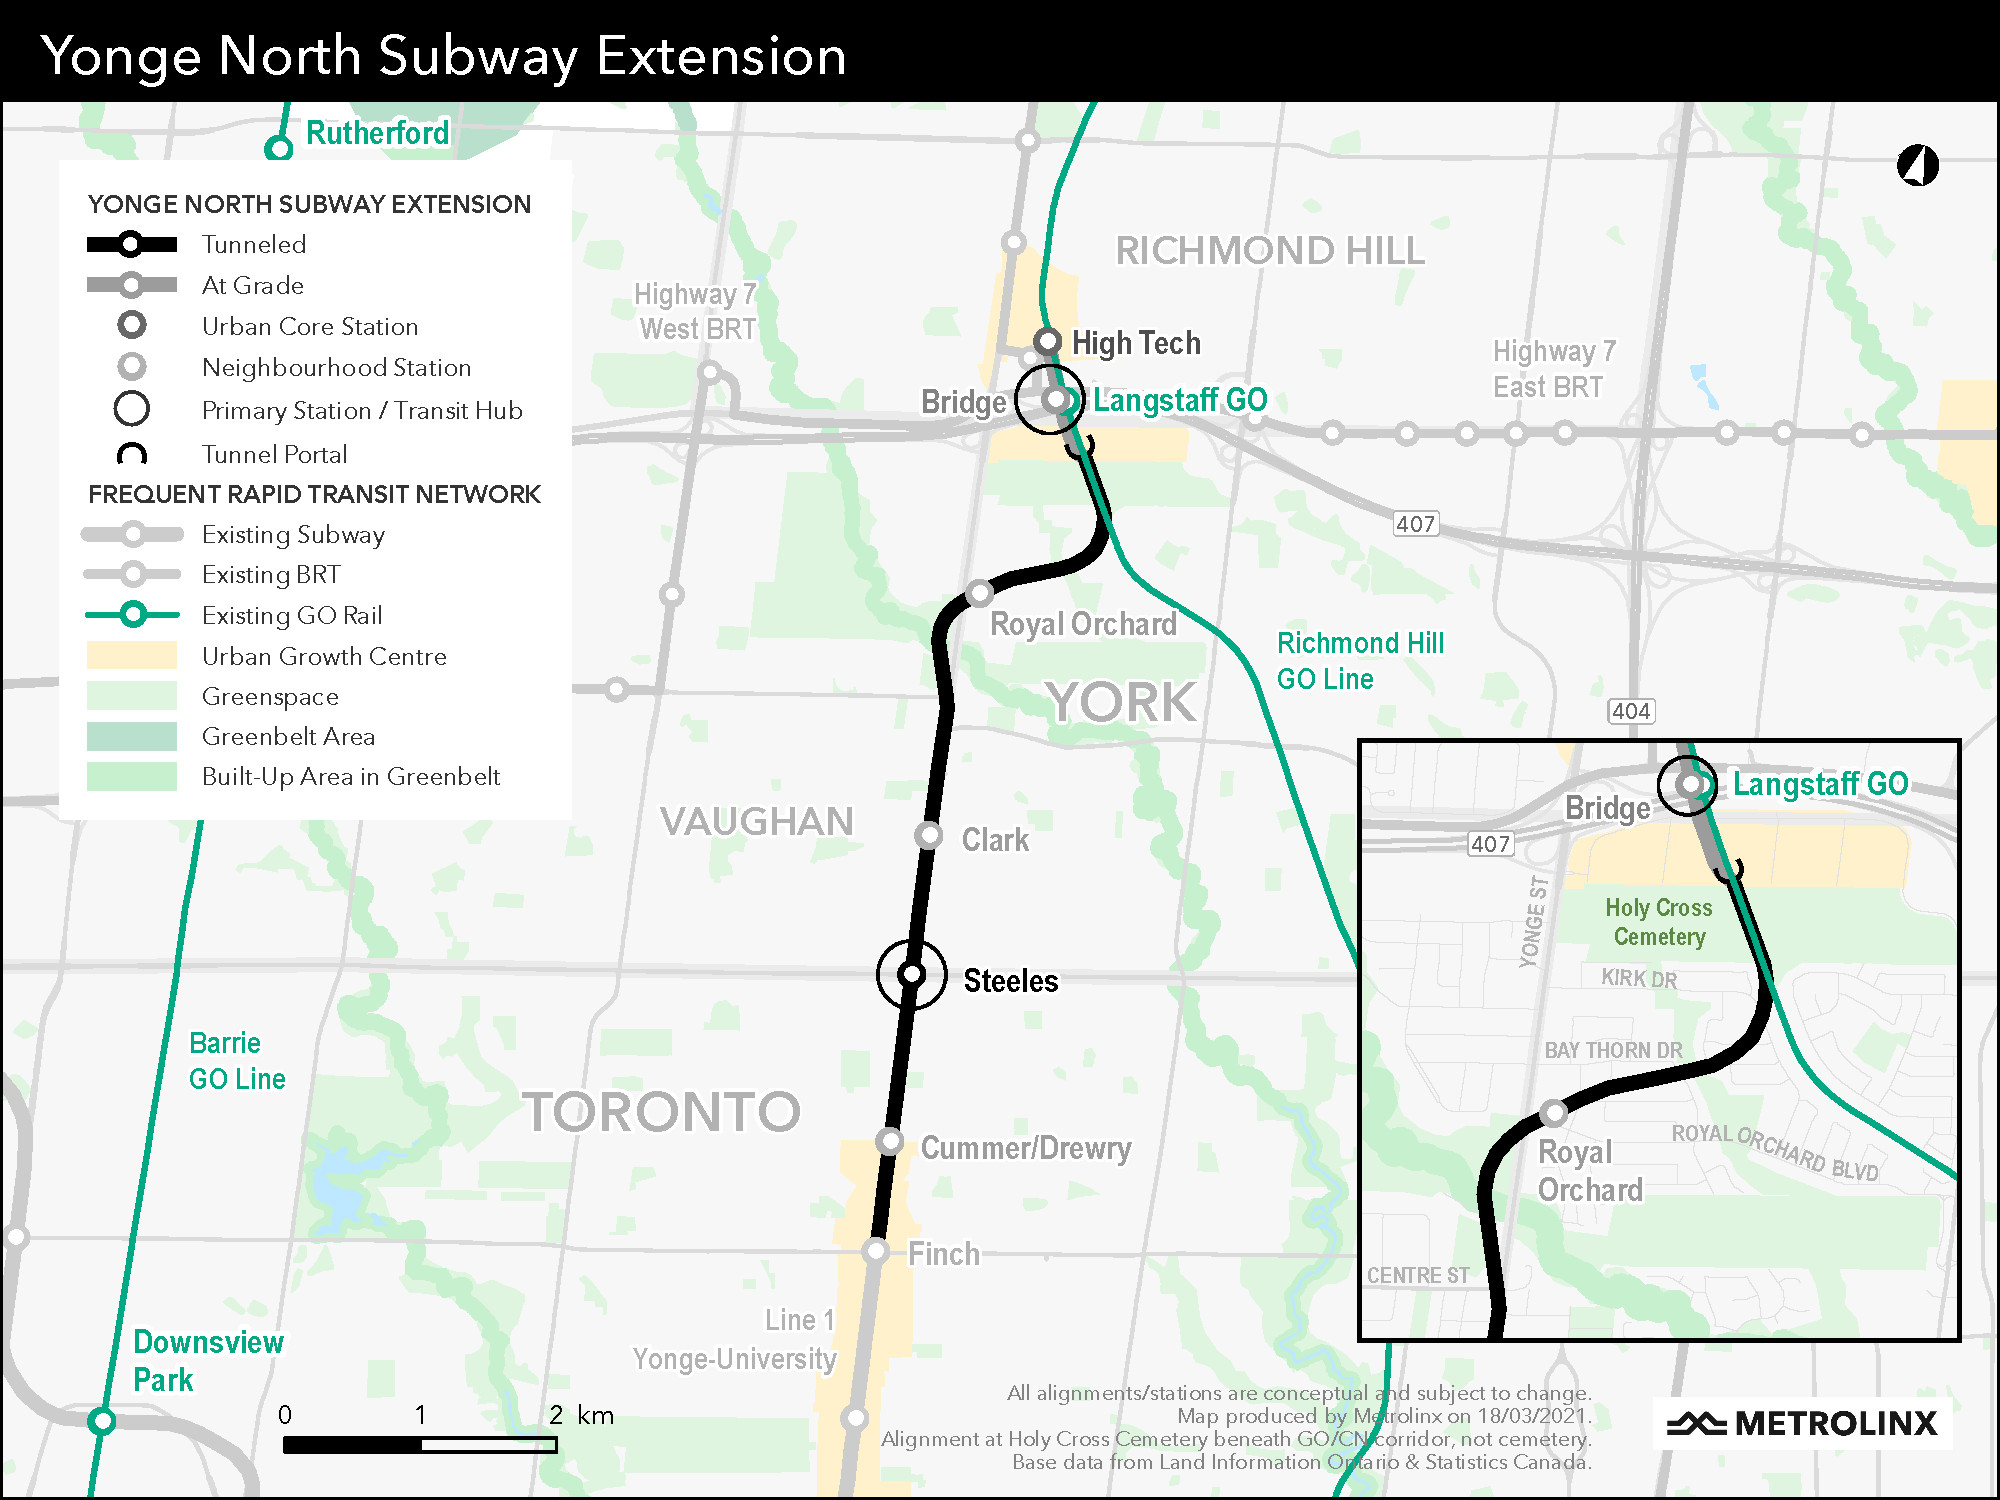 Map of the proposed new alignment for the Yonge North subway extension